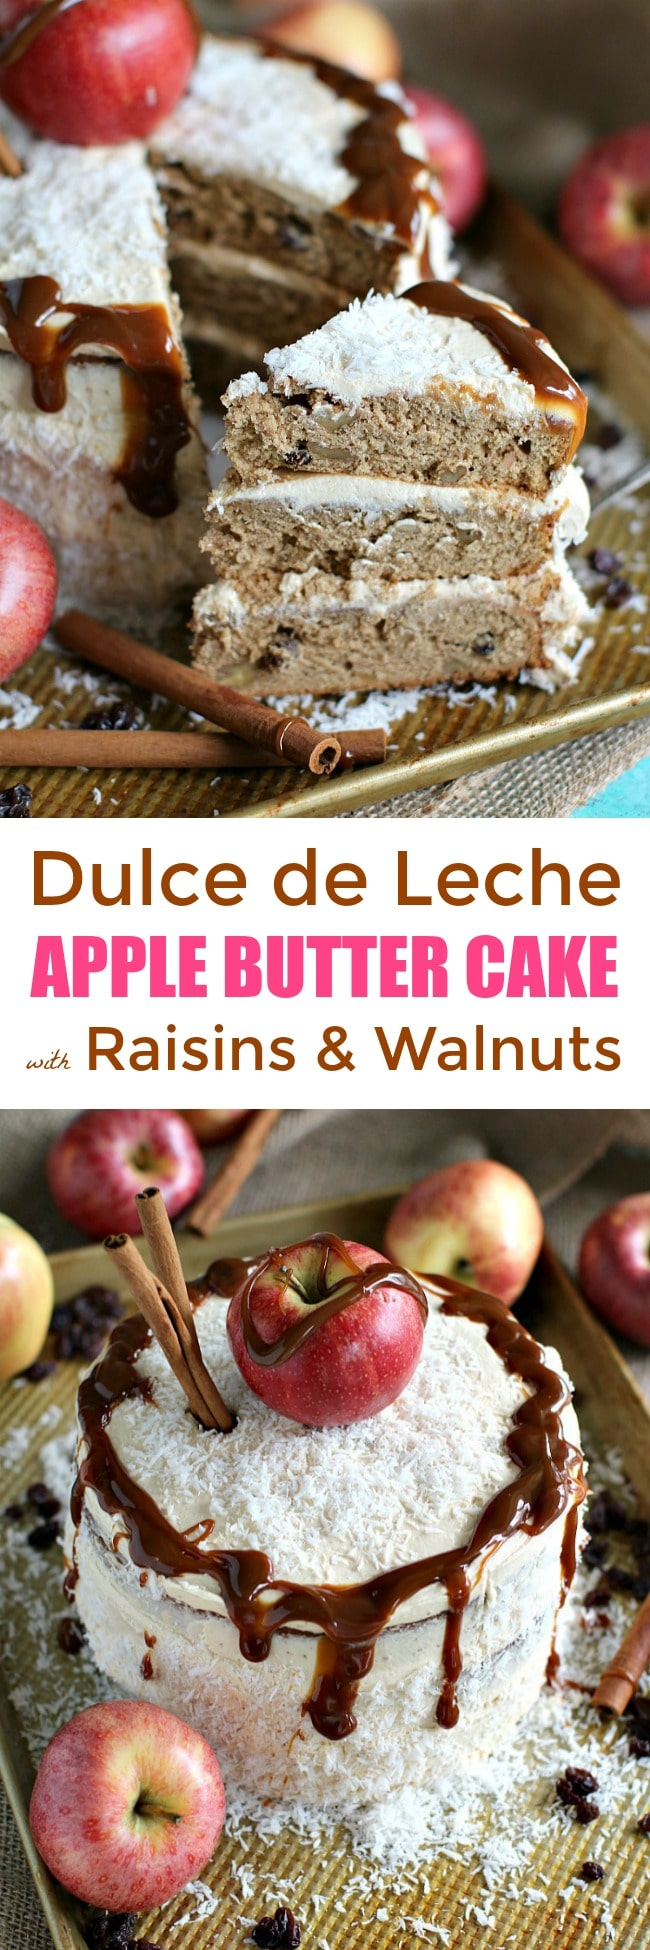 Apple Butter Cake with Dulce de Leche Buttercream loaded with walnuts and raisins, it is such a stunning, decadent and luxurious dessert to make this fall.